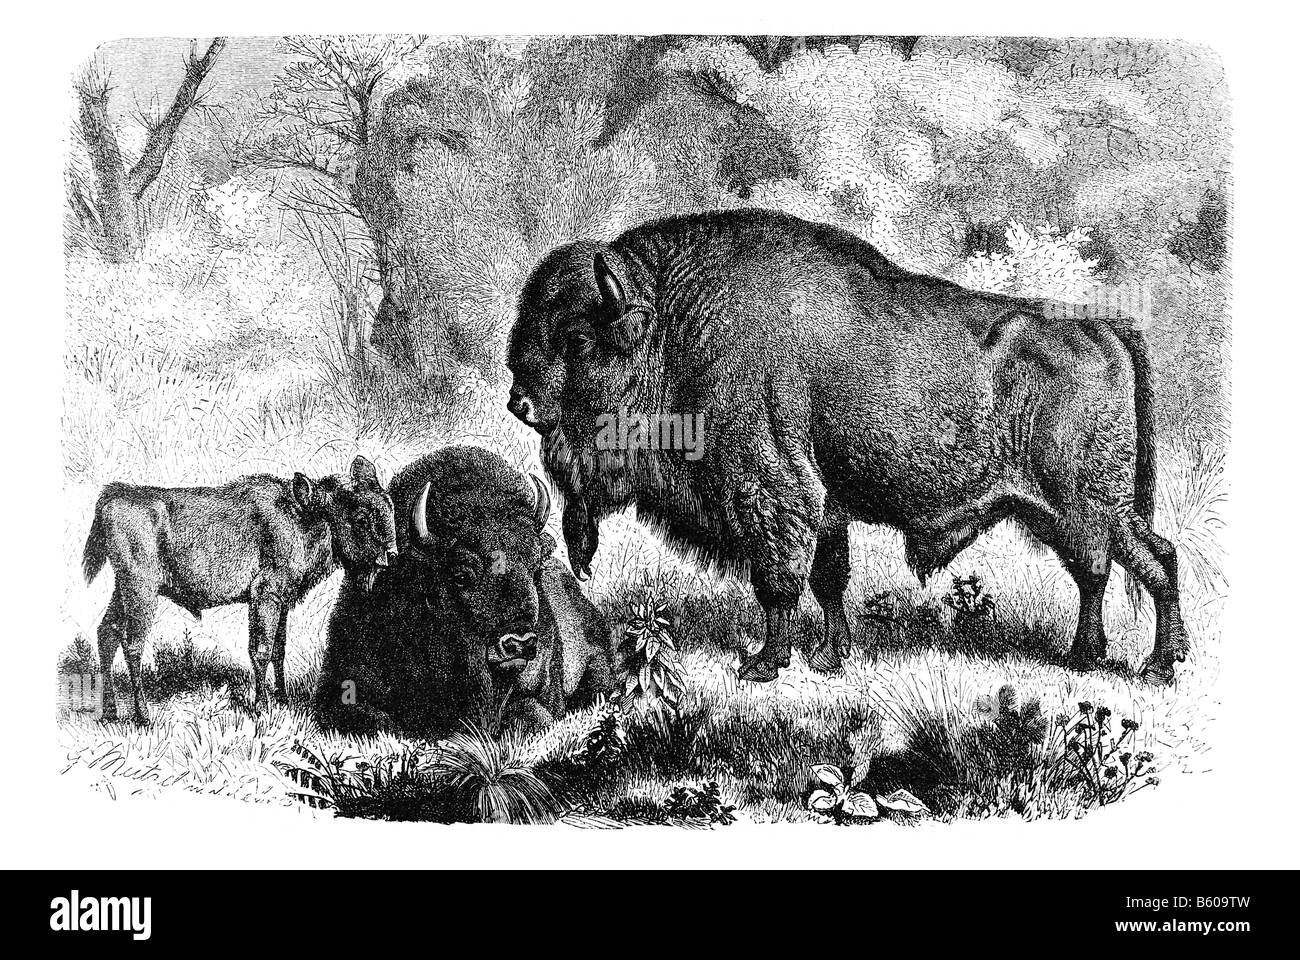 European bison Bison bonasus bison species and the heaviest surviving land animal in Europe - Stock Image